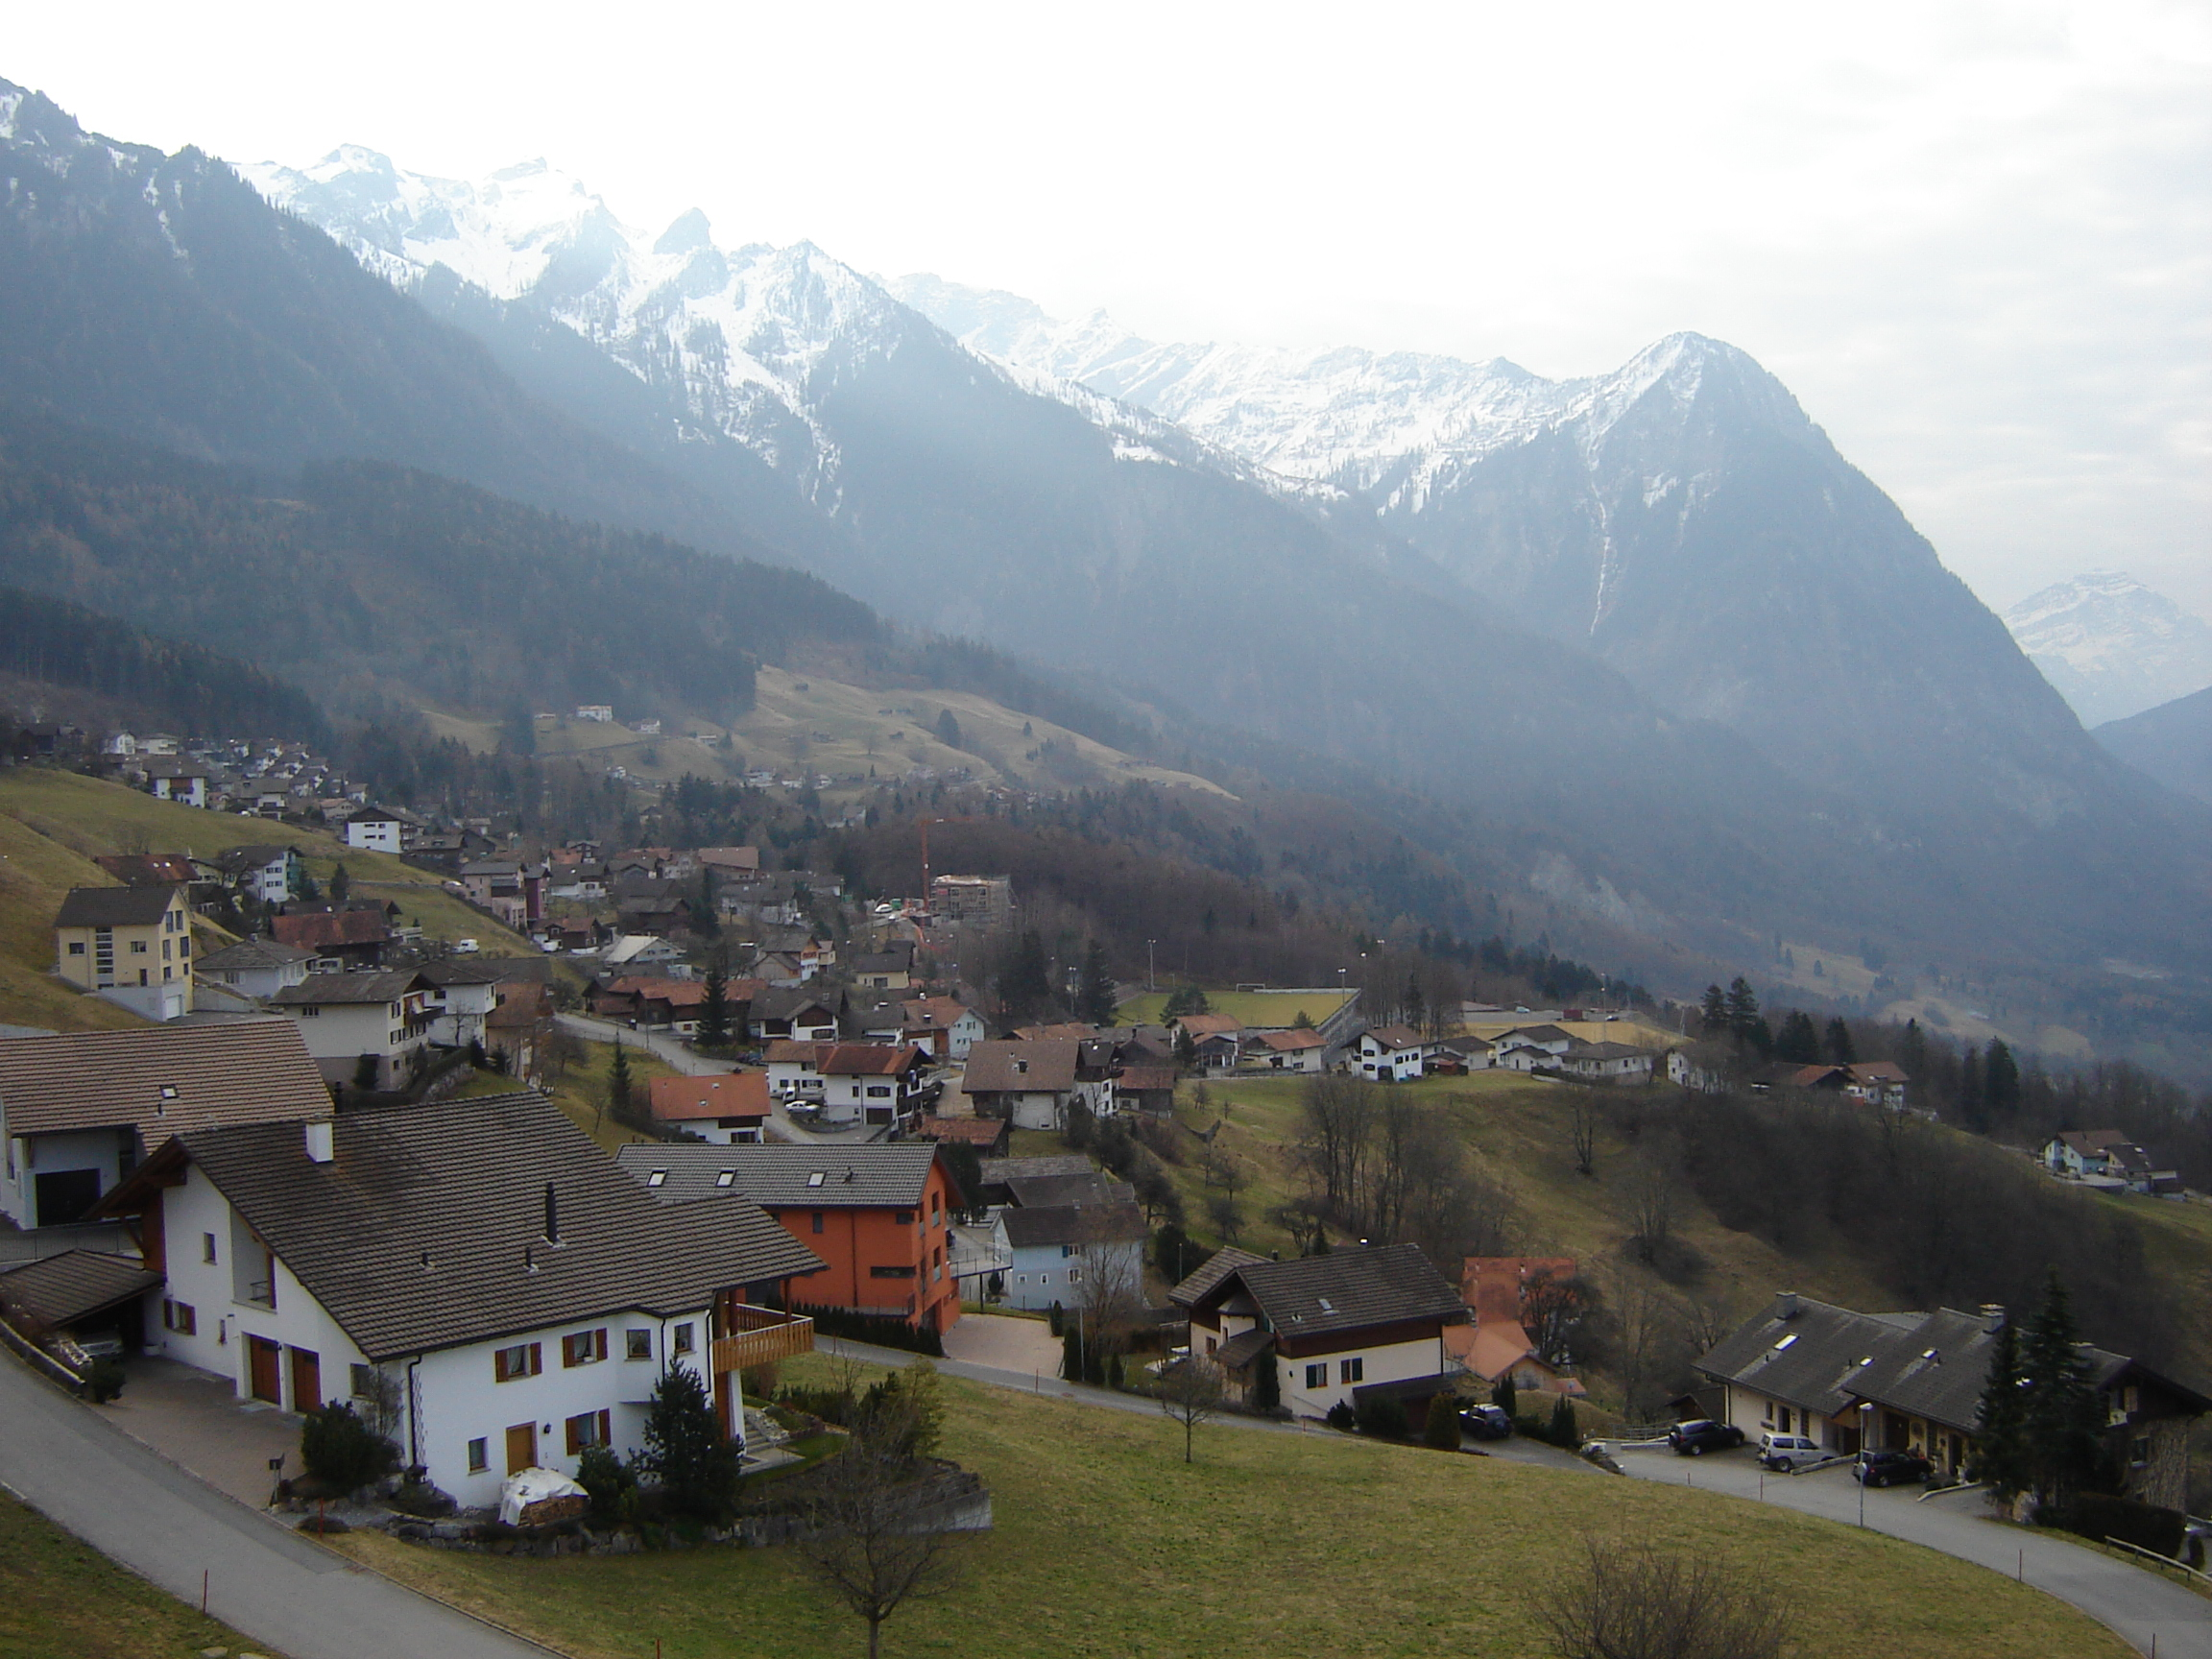 Impressive scenery in Liechtenstein, Europe.